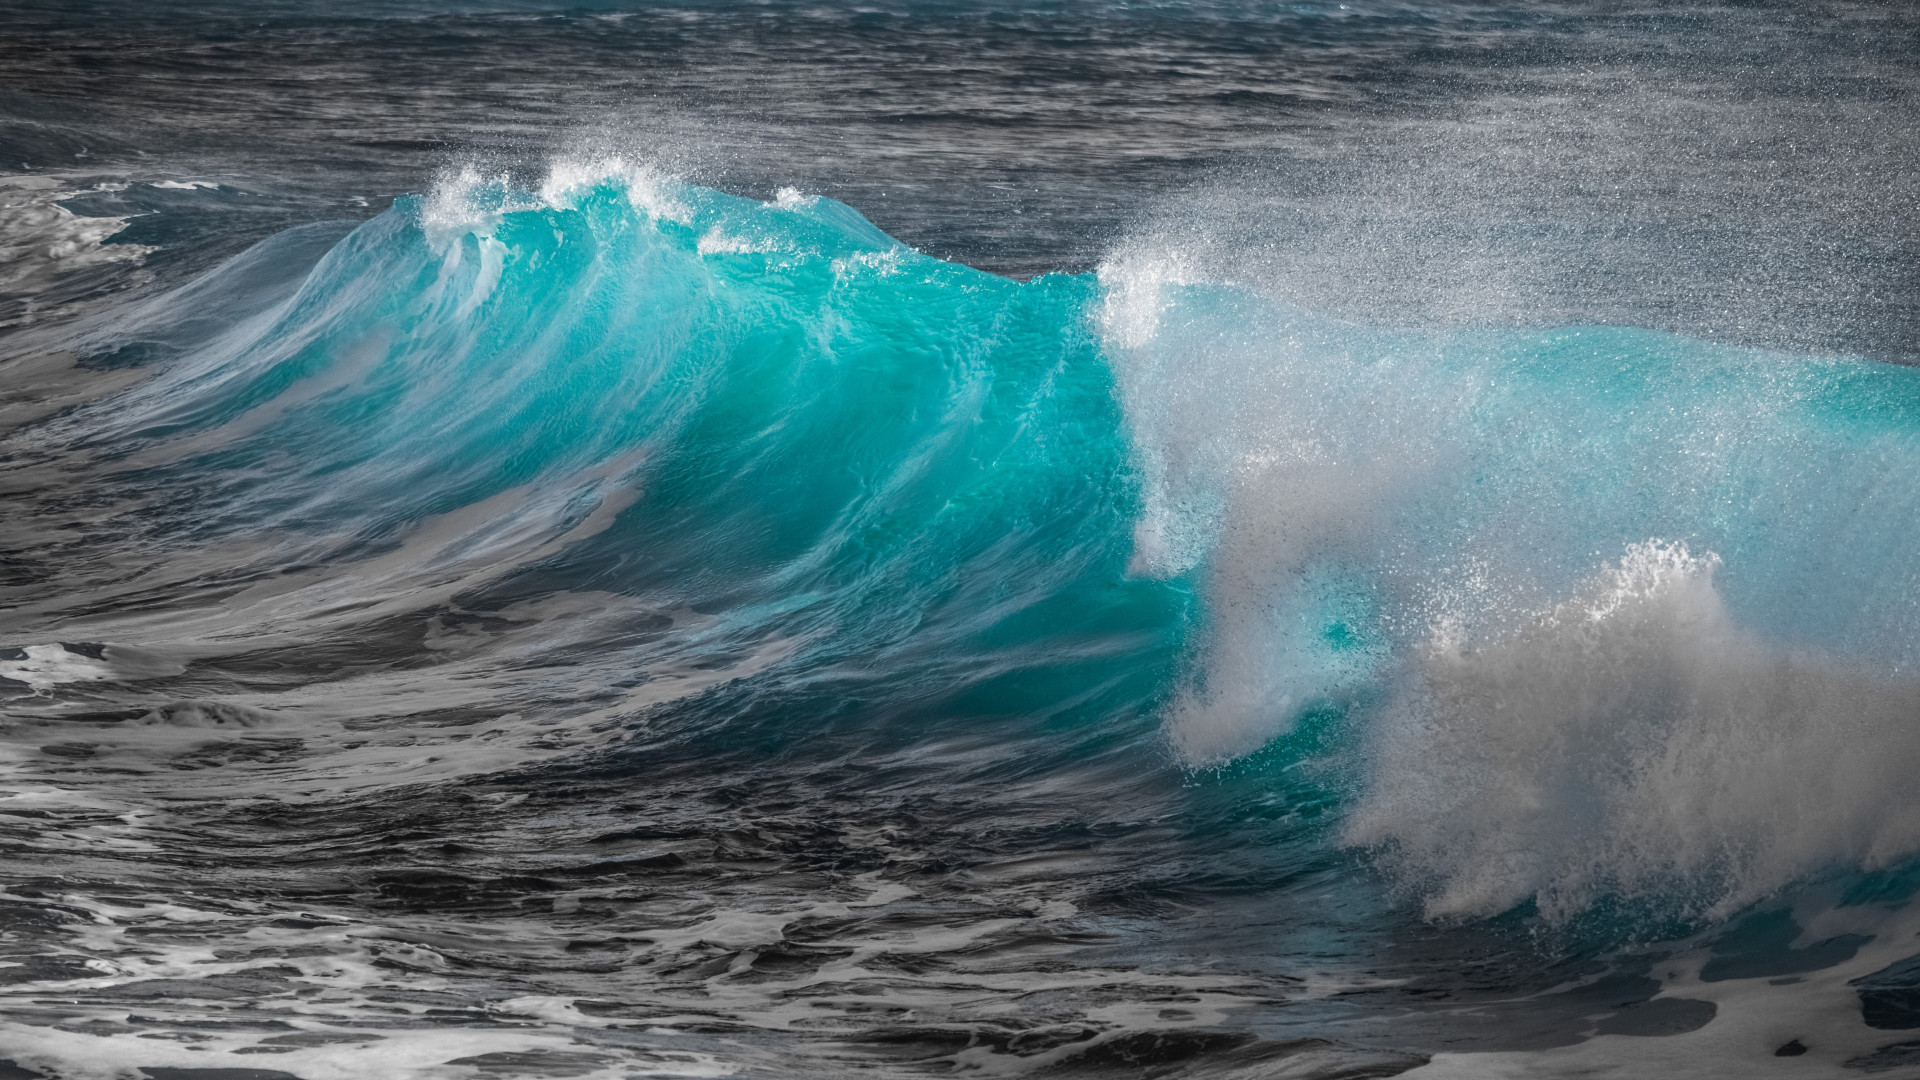 Turquoise sea wave wallpaper 1920x1080